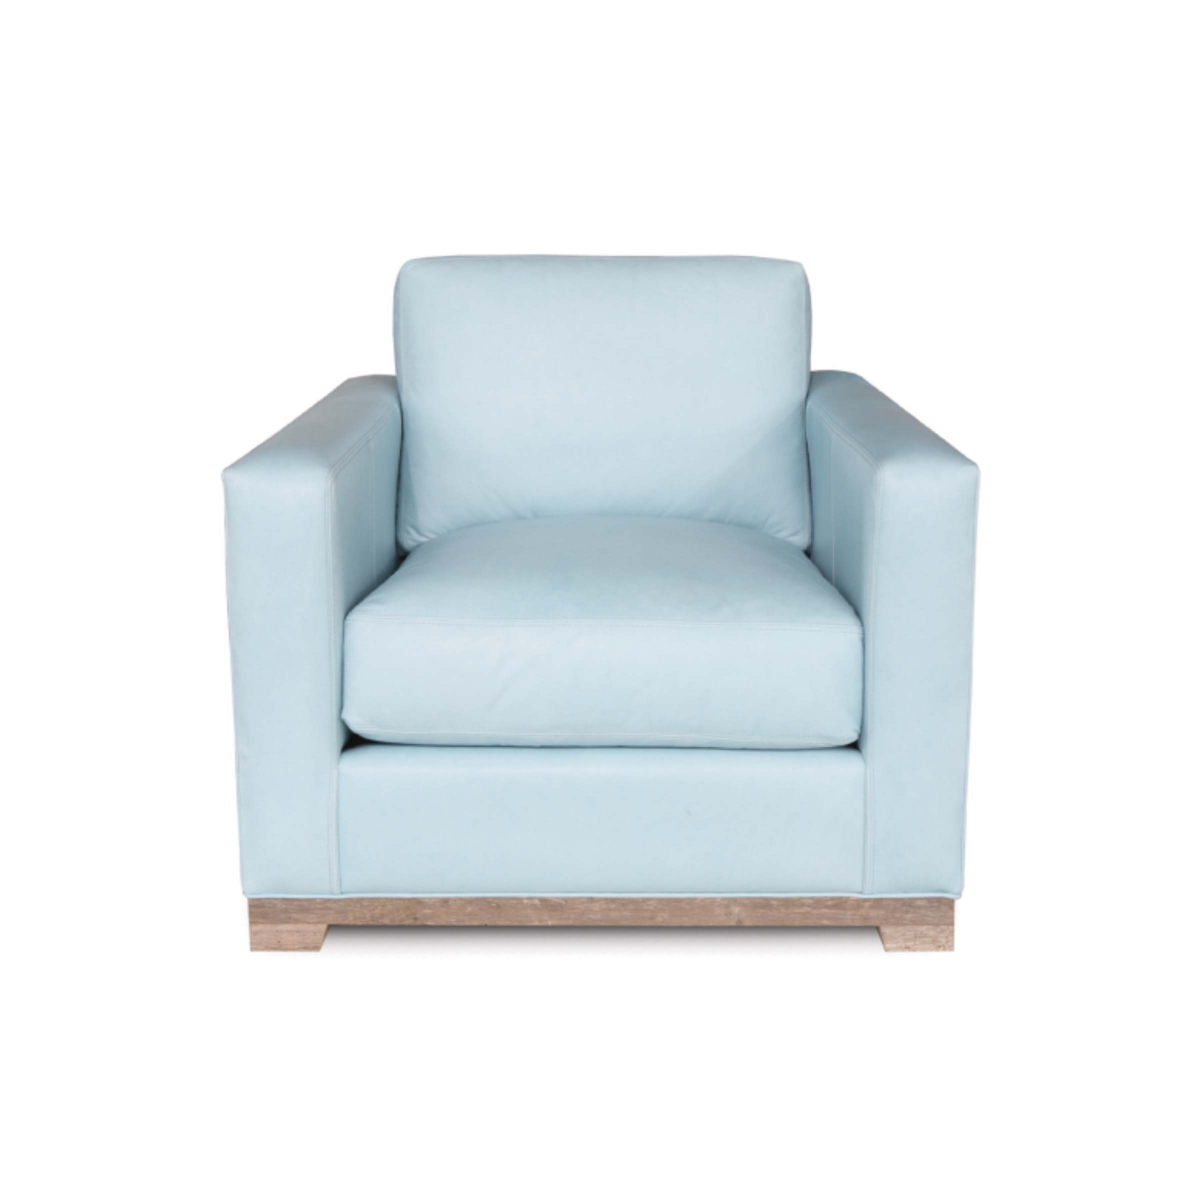 NEWPORT - 10 Chair Dreamer Powder Blue